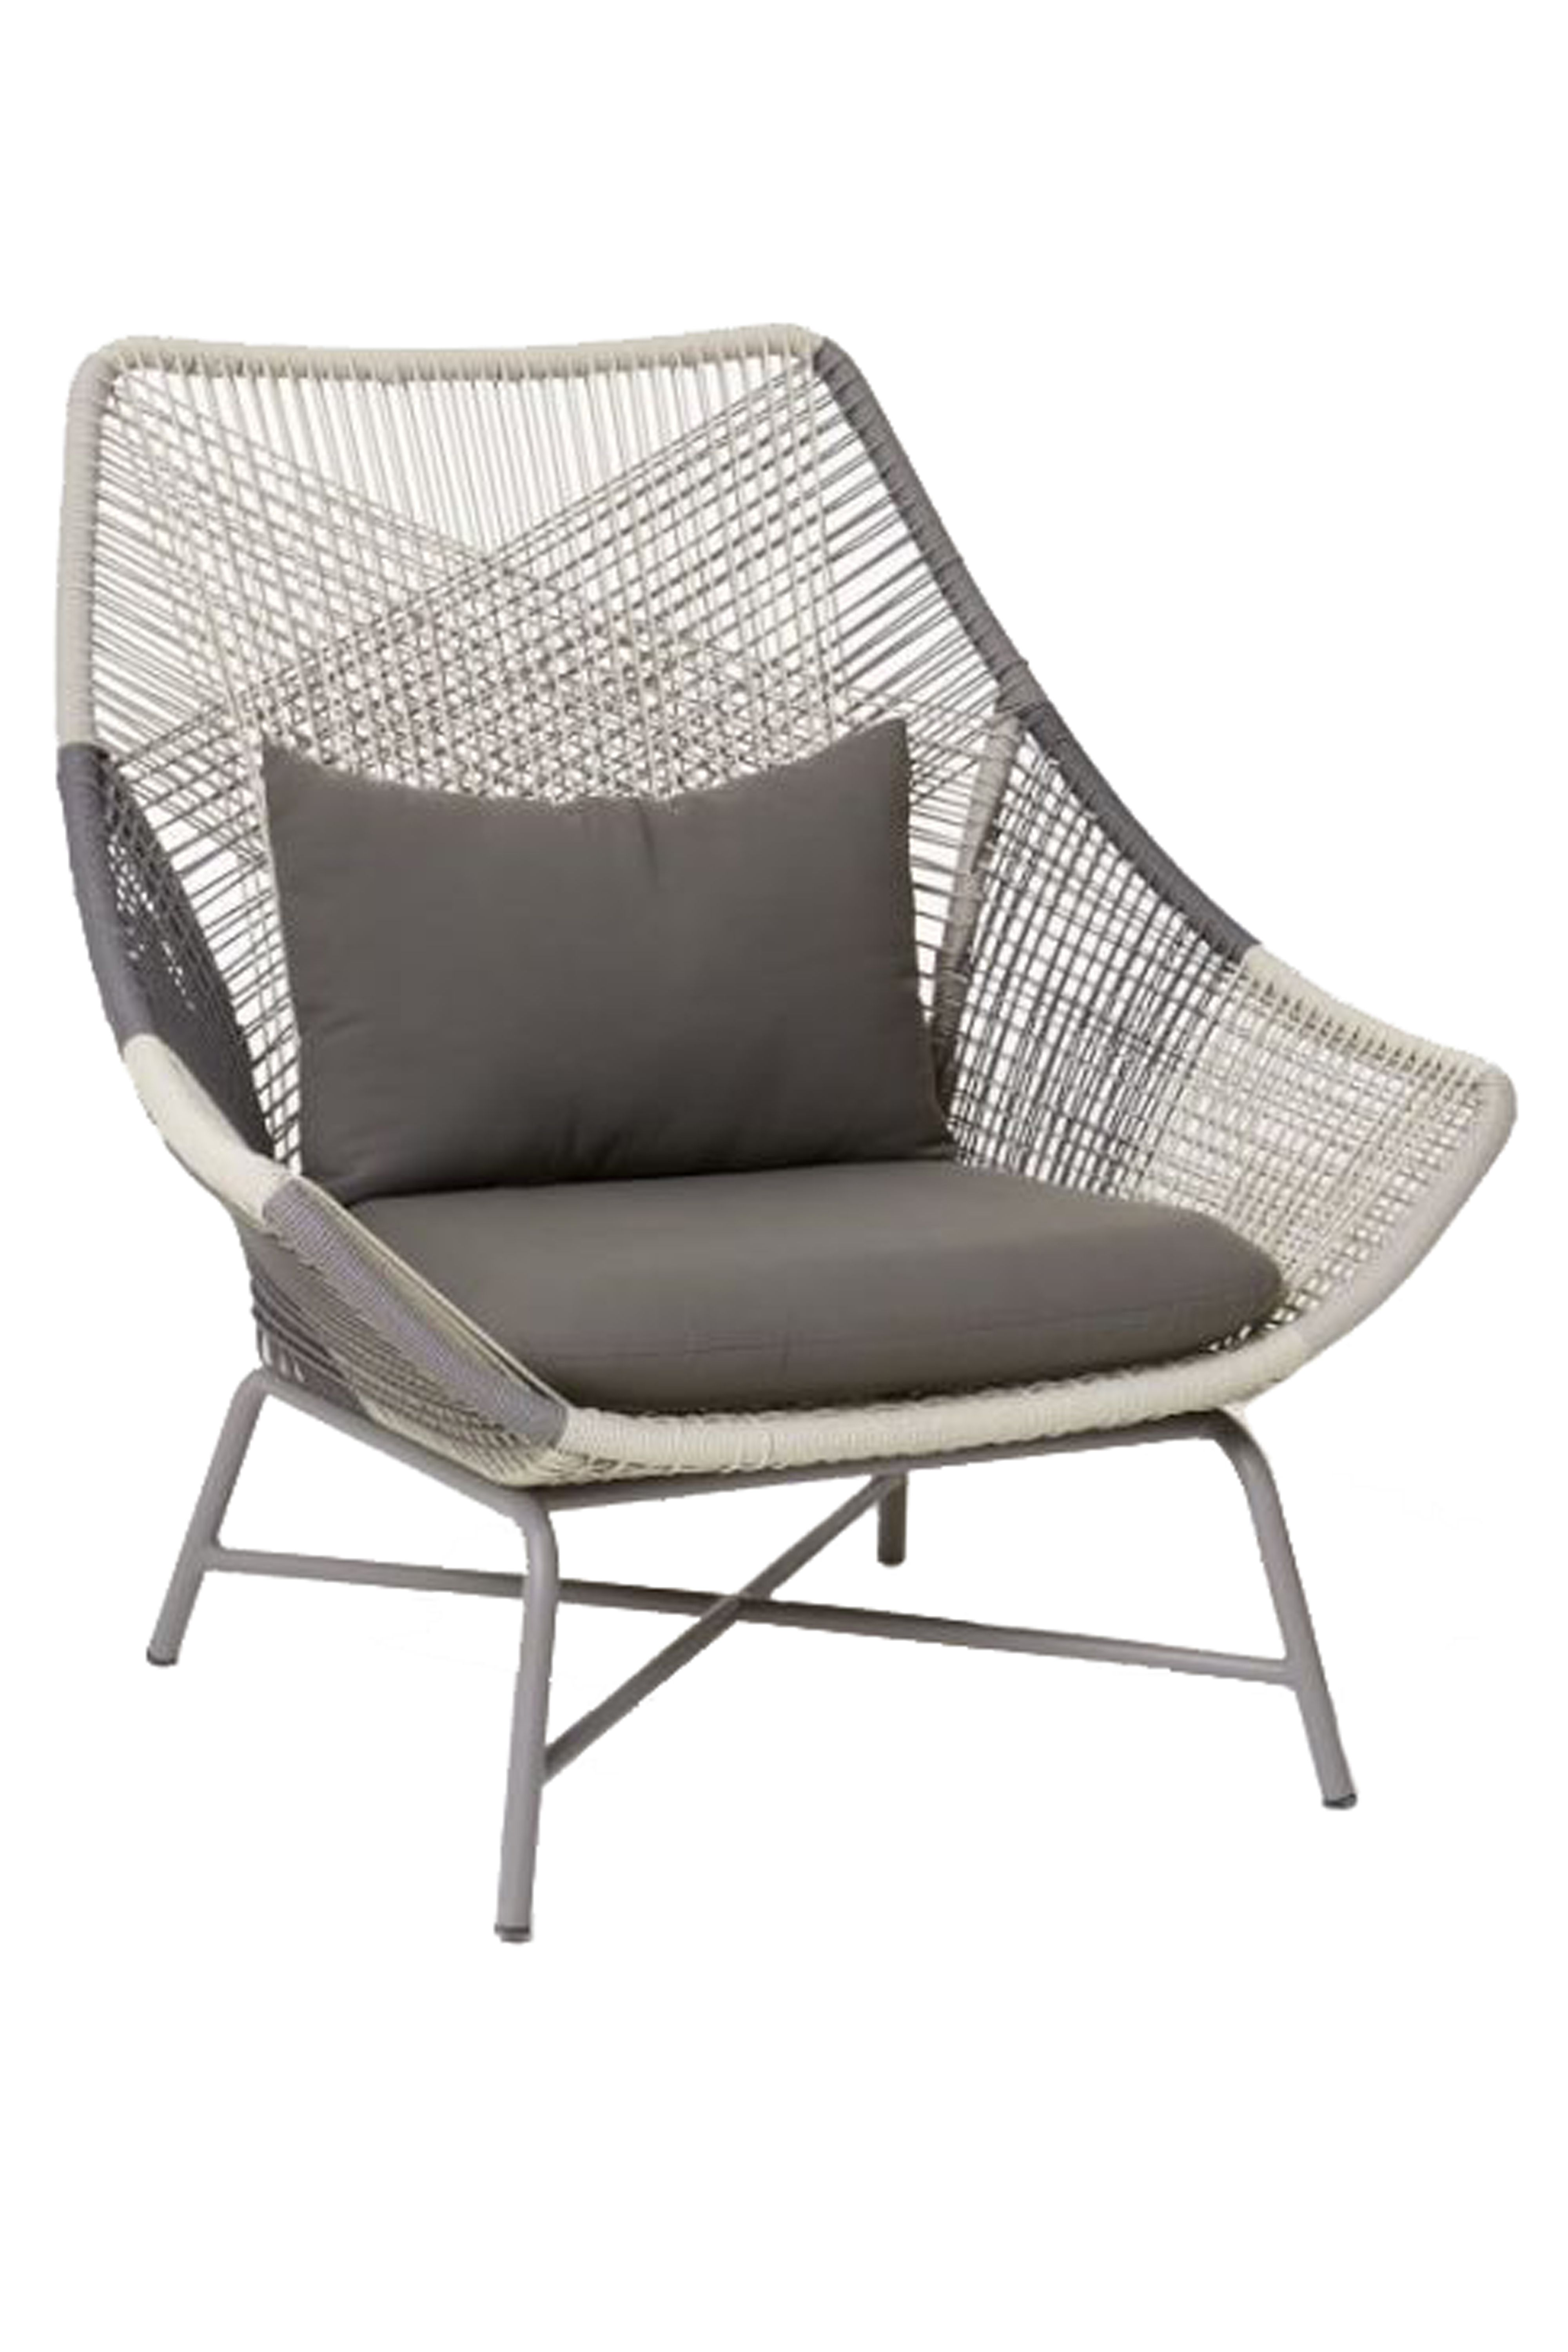 The 35 Top Garden Chairs Stylish Outdoor Seating For Gardens